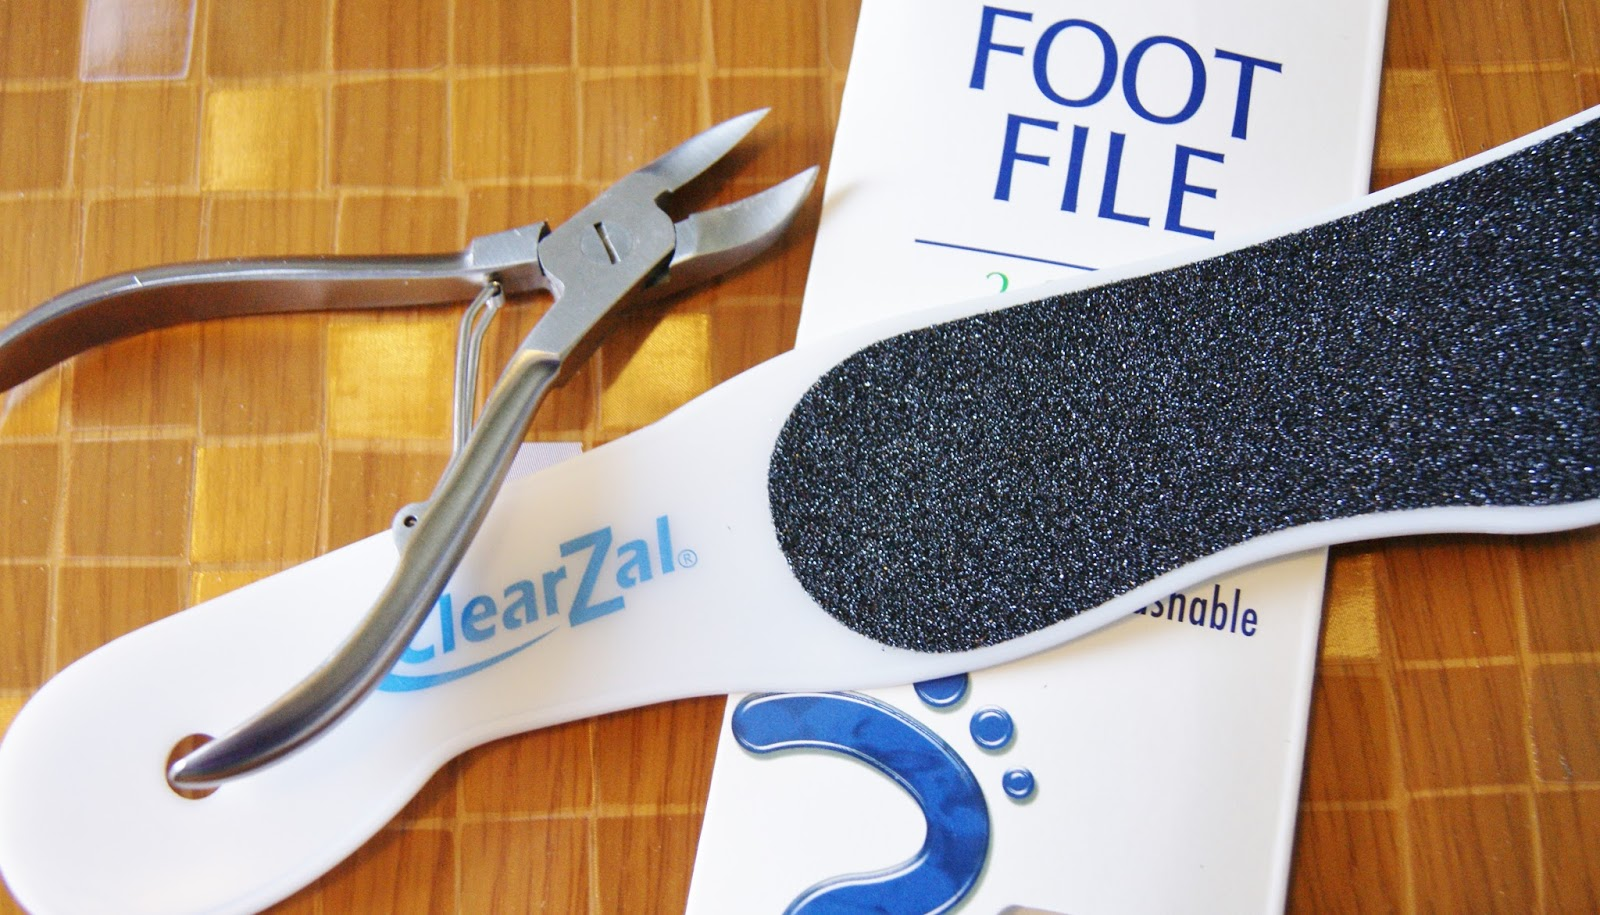 ClearZal Foot File